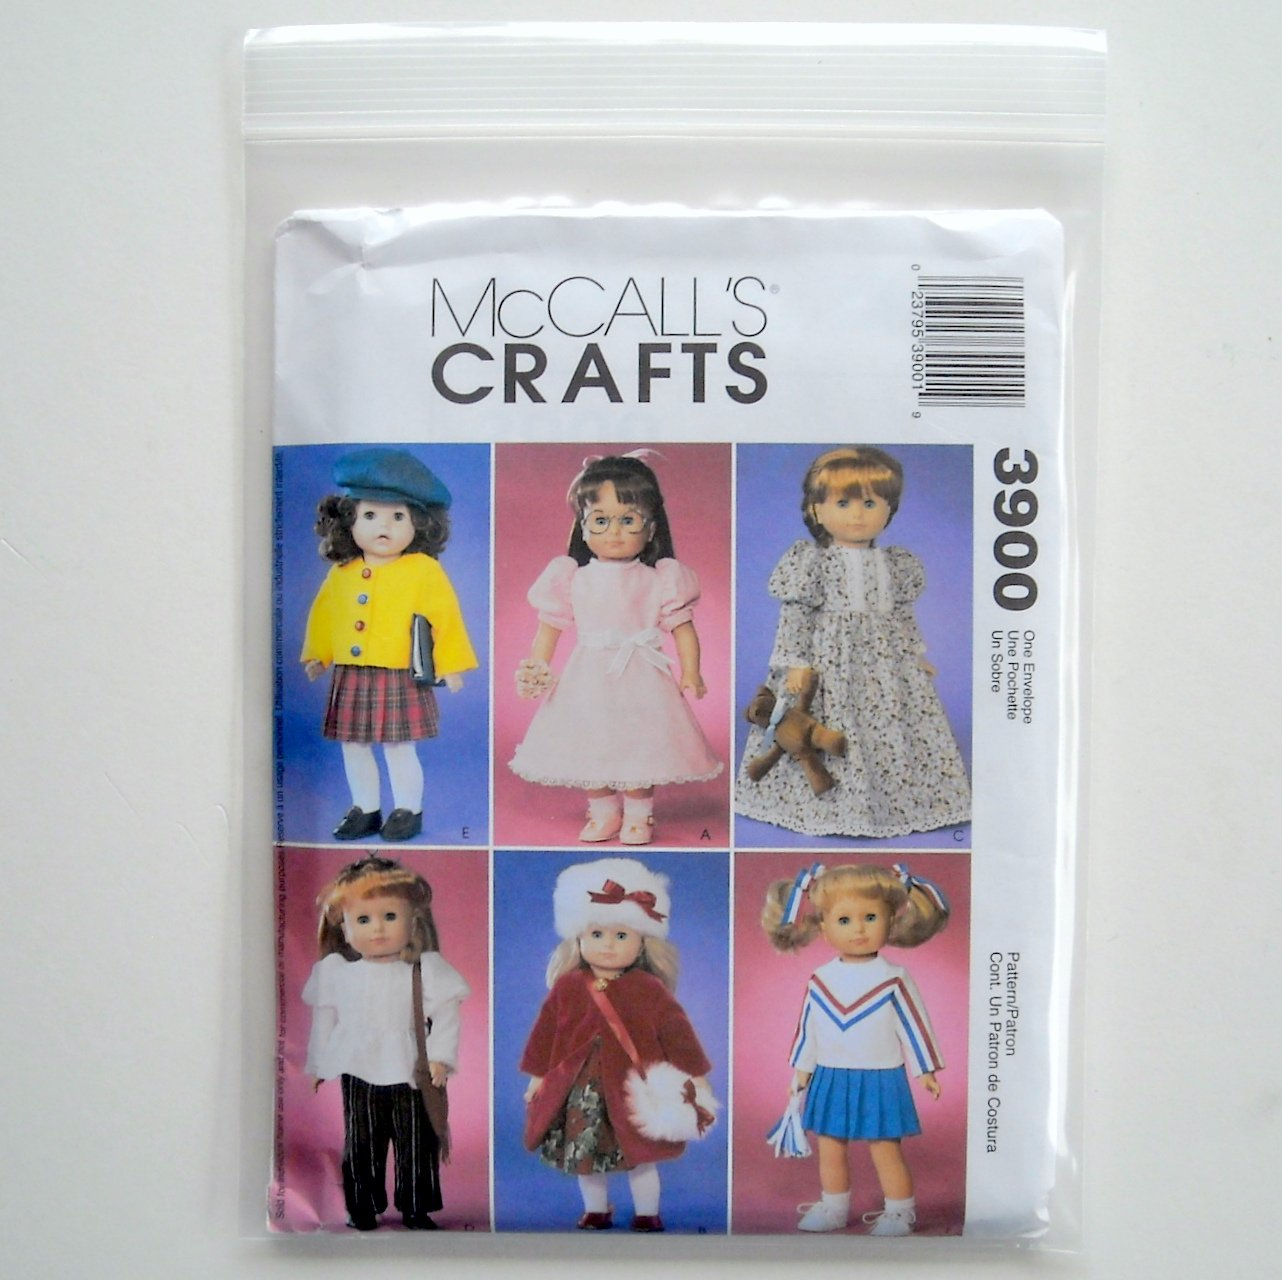 McCalls Crafts Doll Clothes For 18 inch Dolls Sewing Pattern M3900